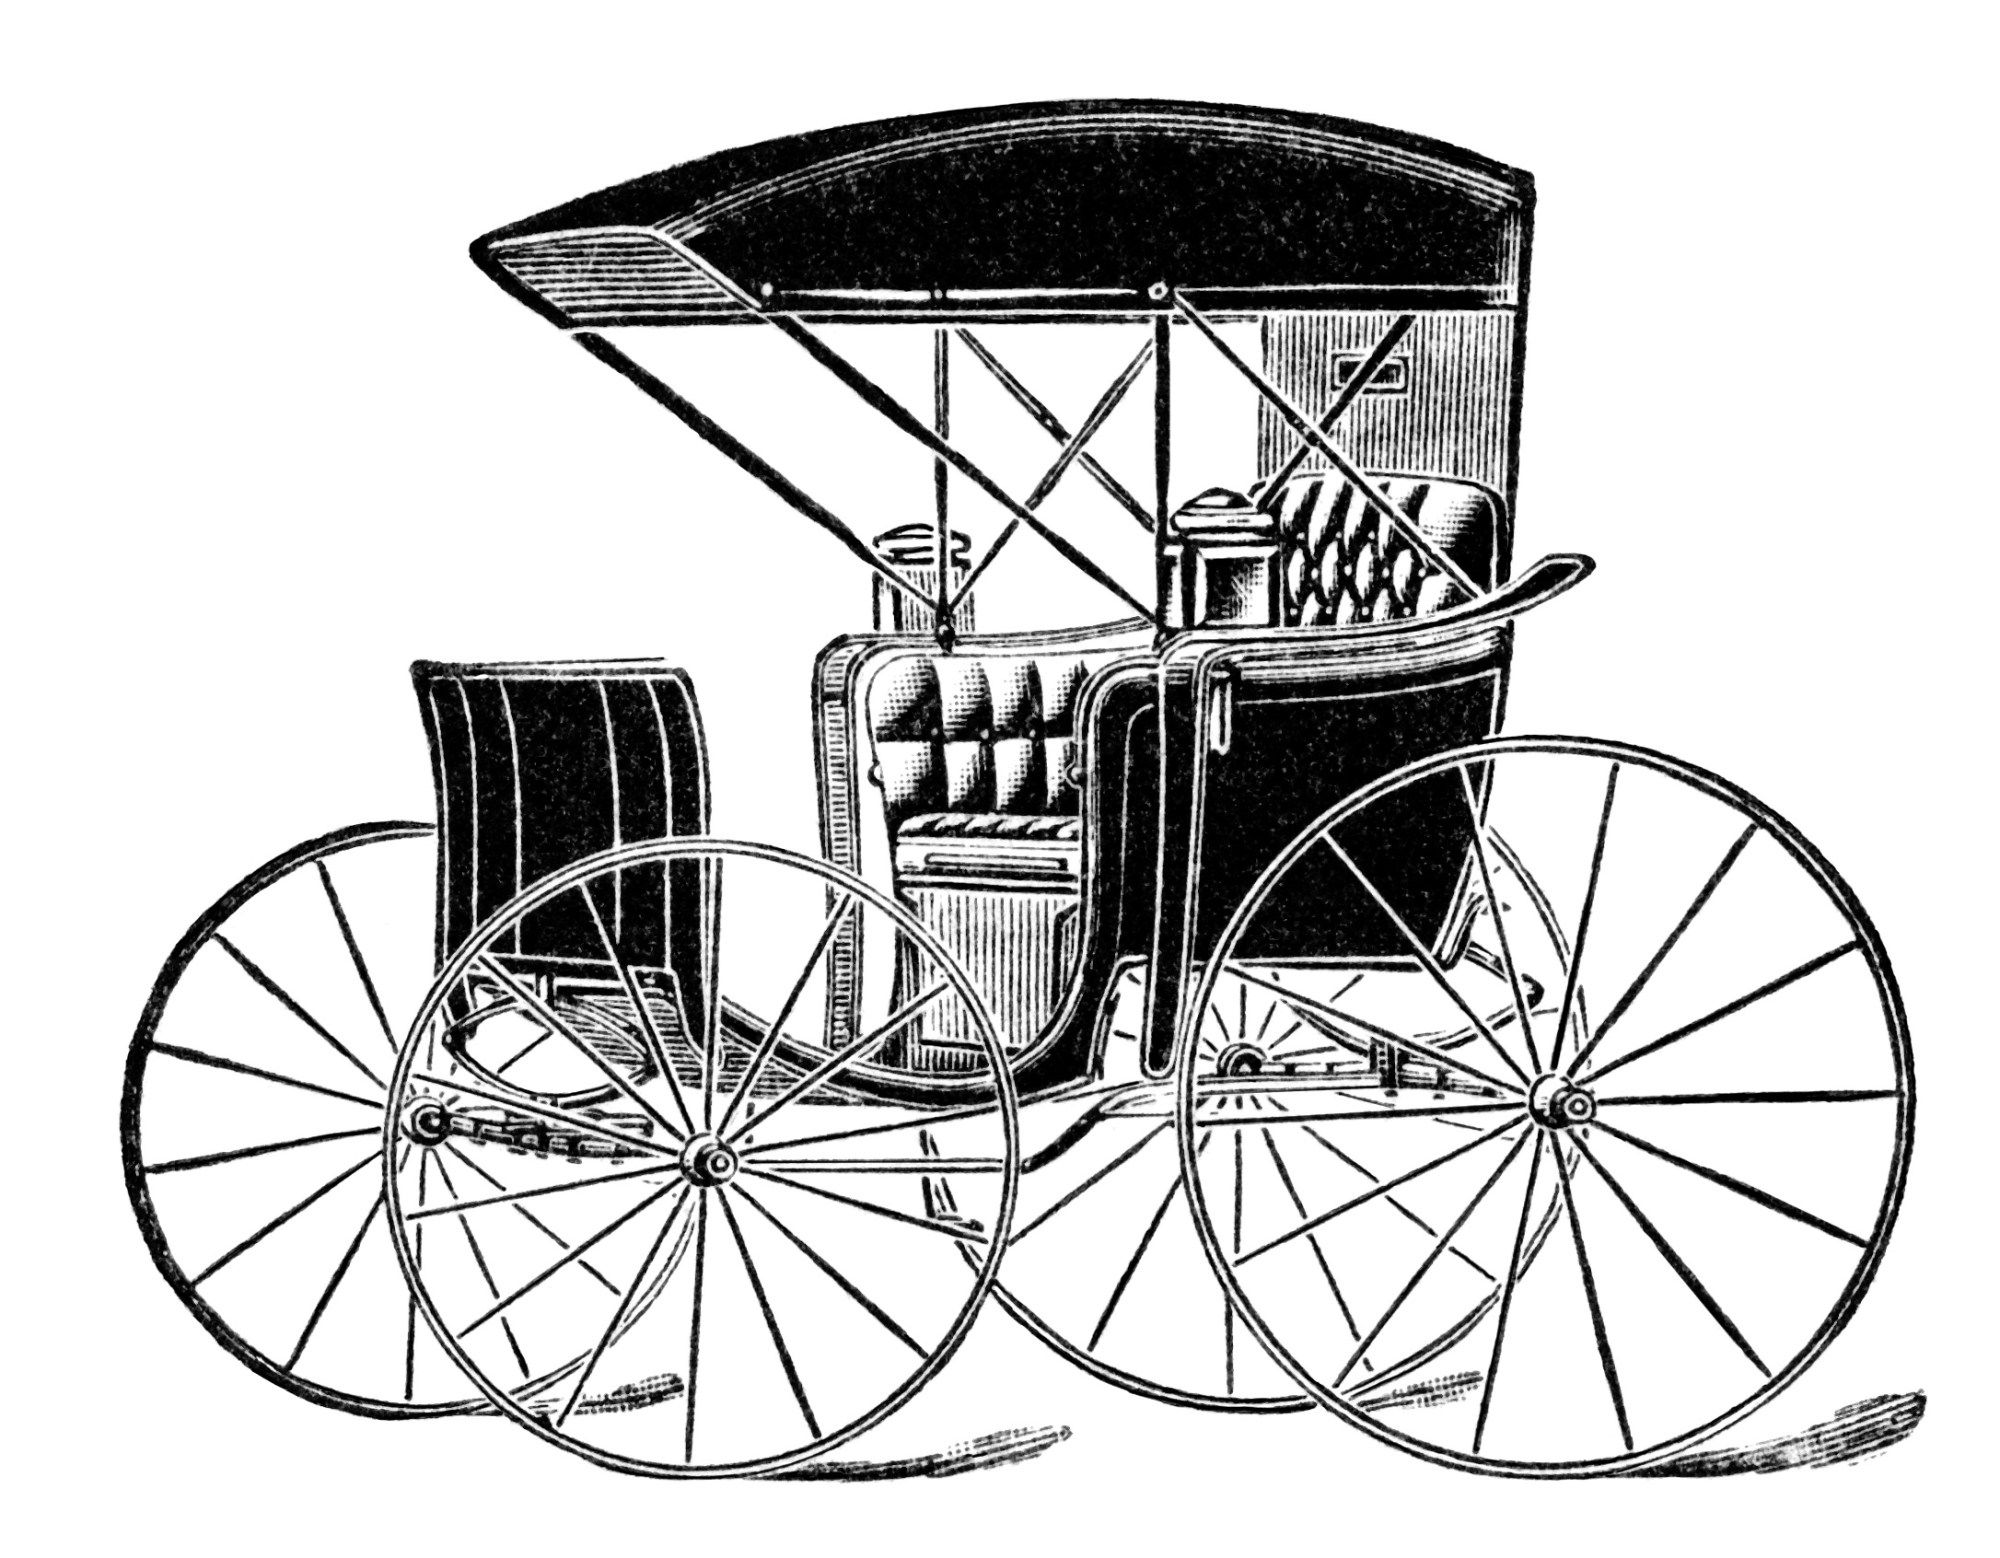 Horse Drawn Carriage Clip Art, Vintage Transportation